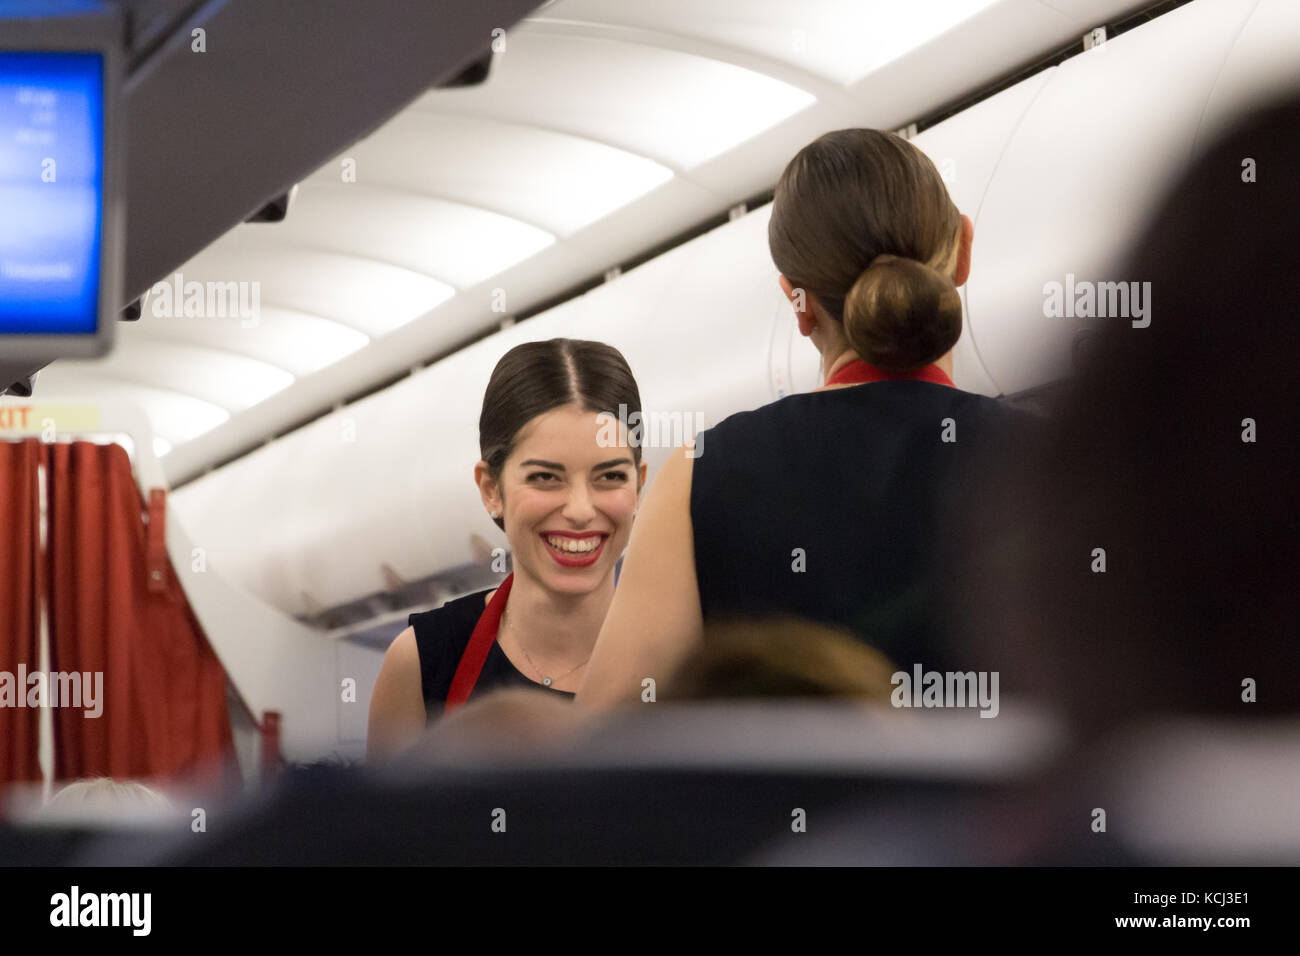 Munich, Germany - September 21th, 2017: Two female flight attendants are serving the meal in the economy class , - Stock Image